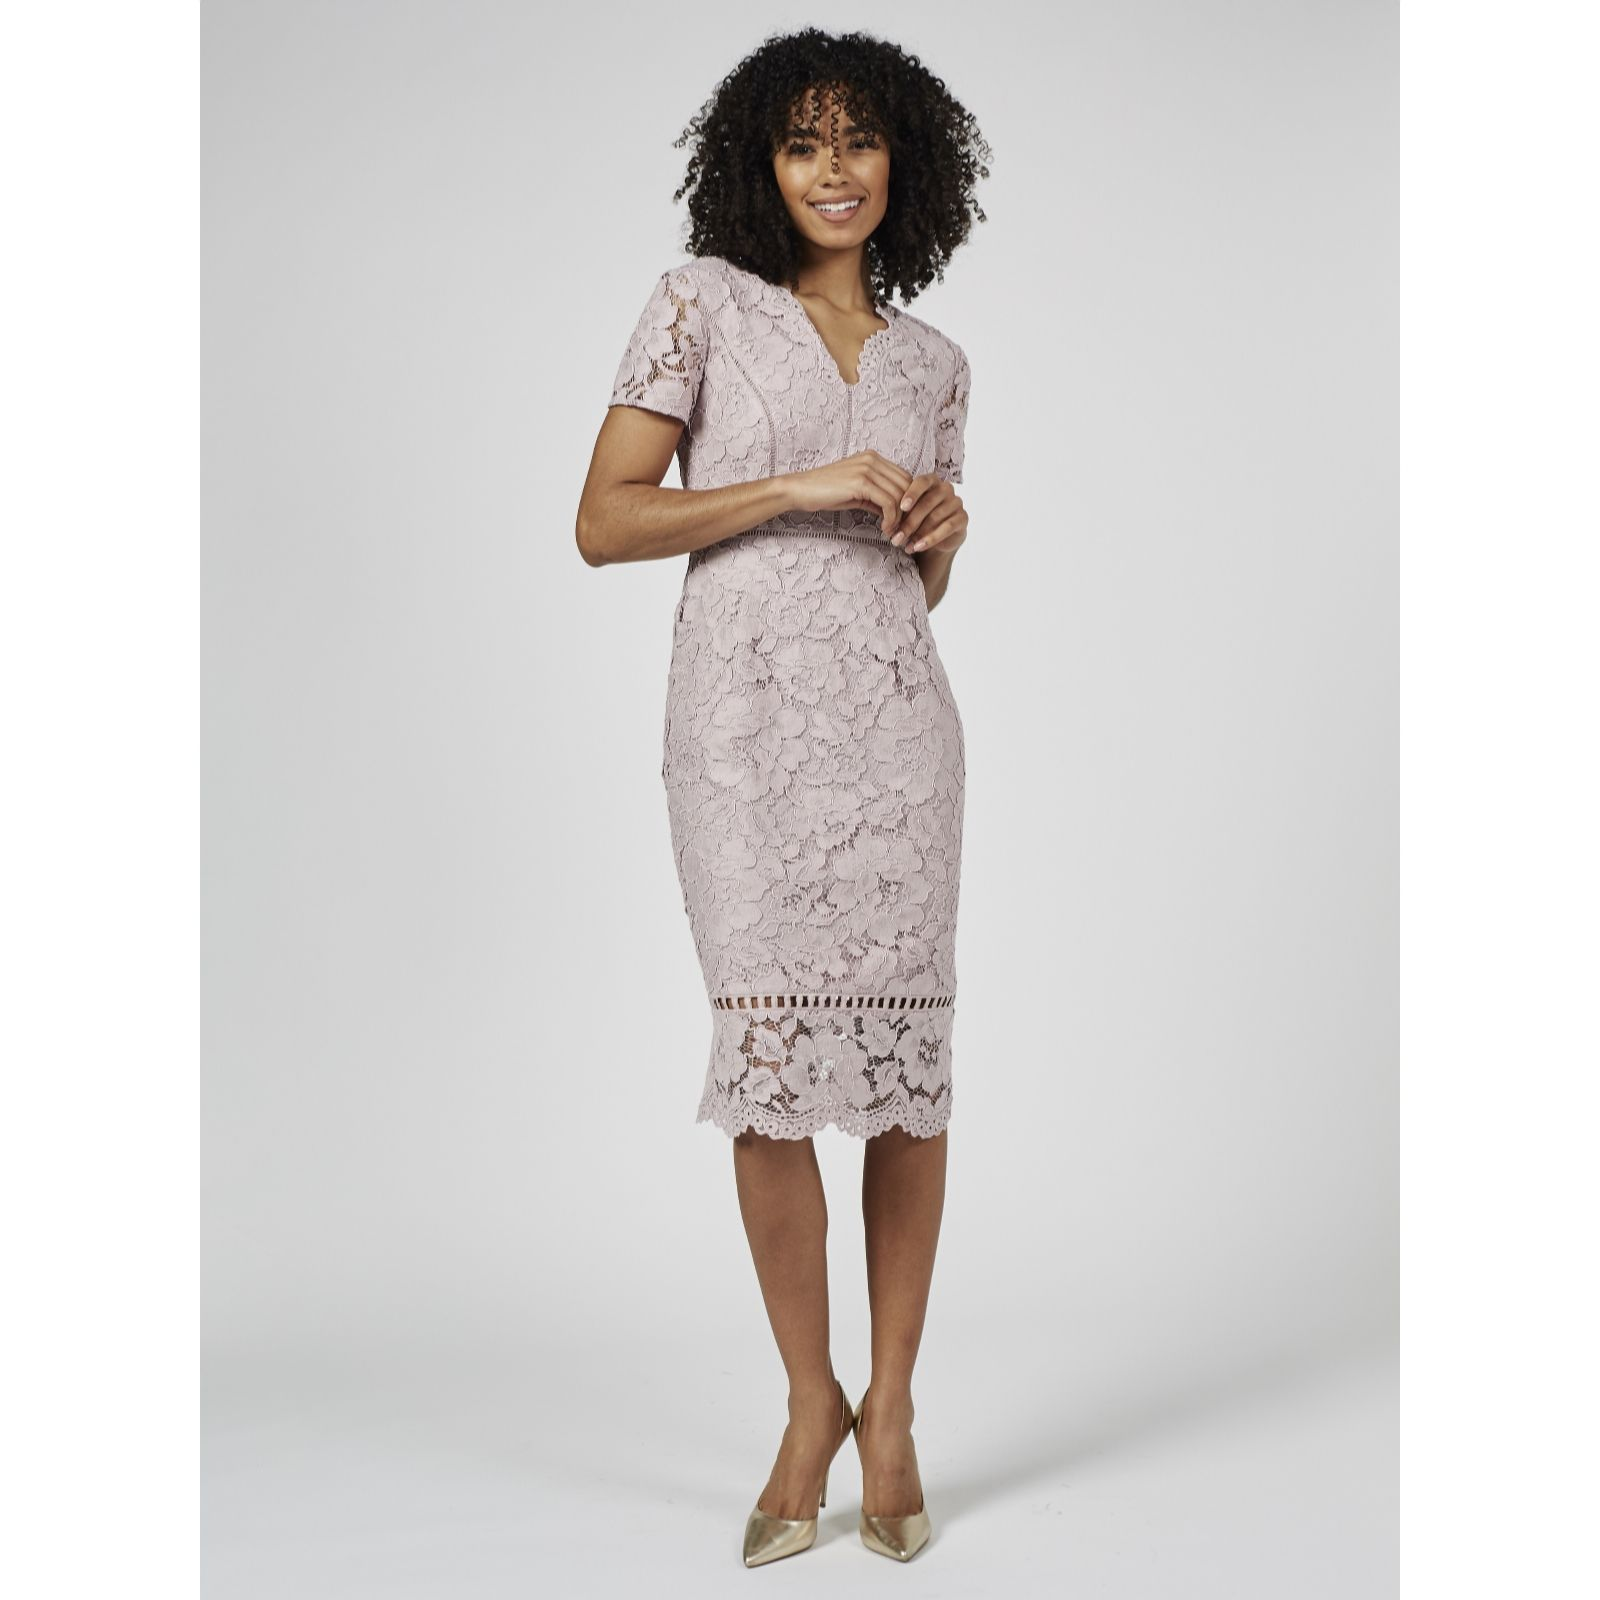 a5b8dea84c Phase Eight Trinity Corded Lace Dress - QVC UK